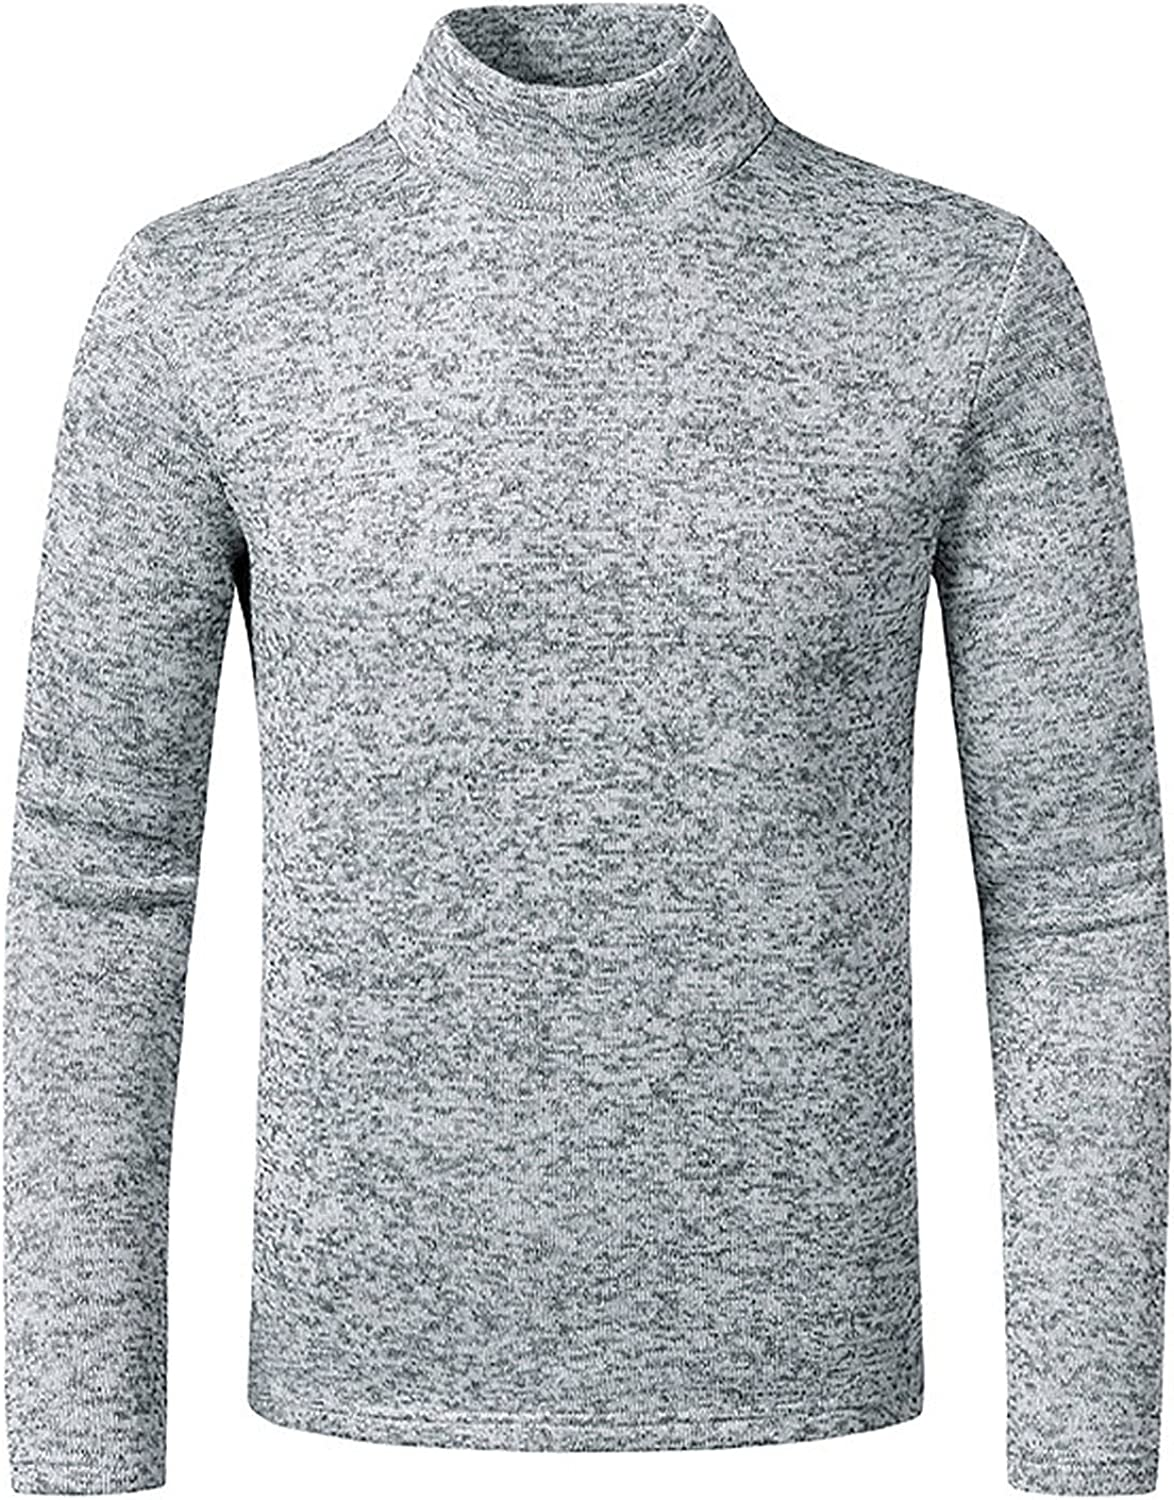 Men's Casual Slim Fit Basic Tops Knitted Thermal Turtleneck Pullover Sweaters Cotton Turtleneck Base Layer Shirt